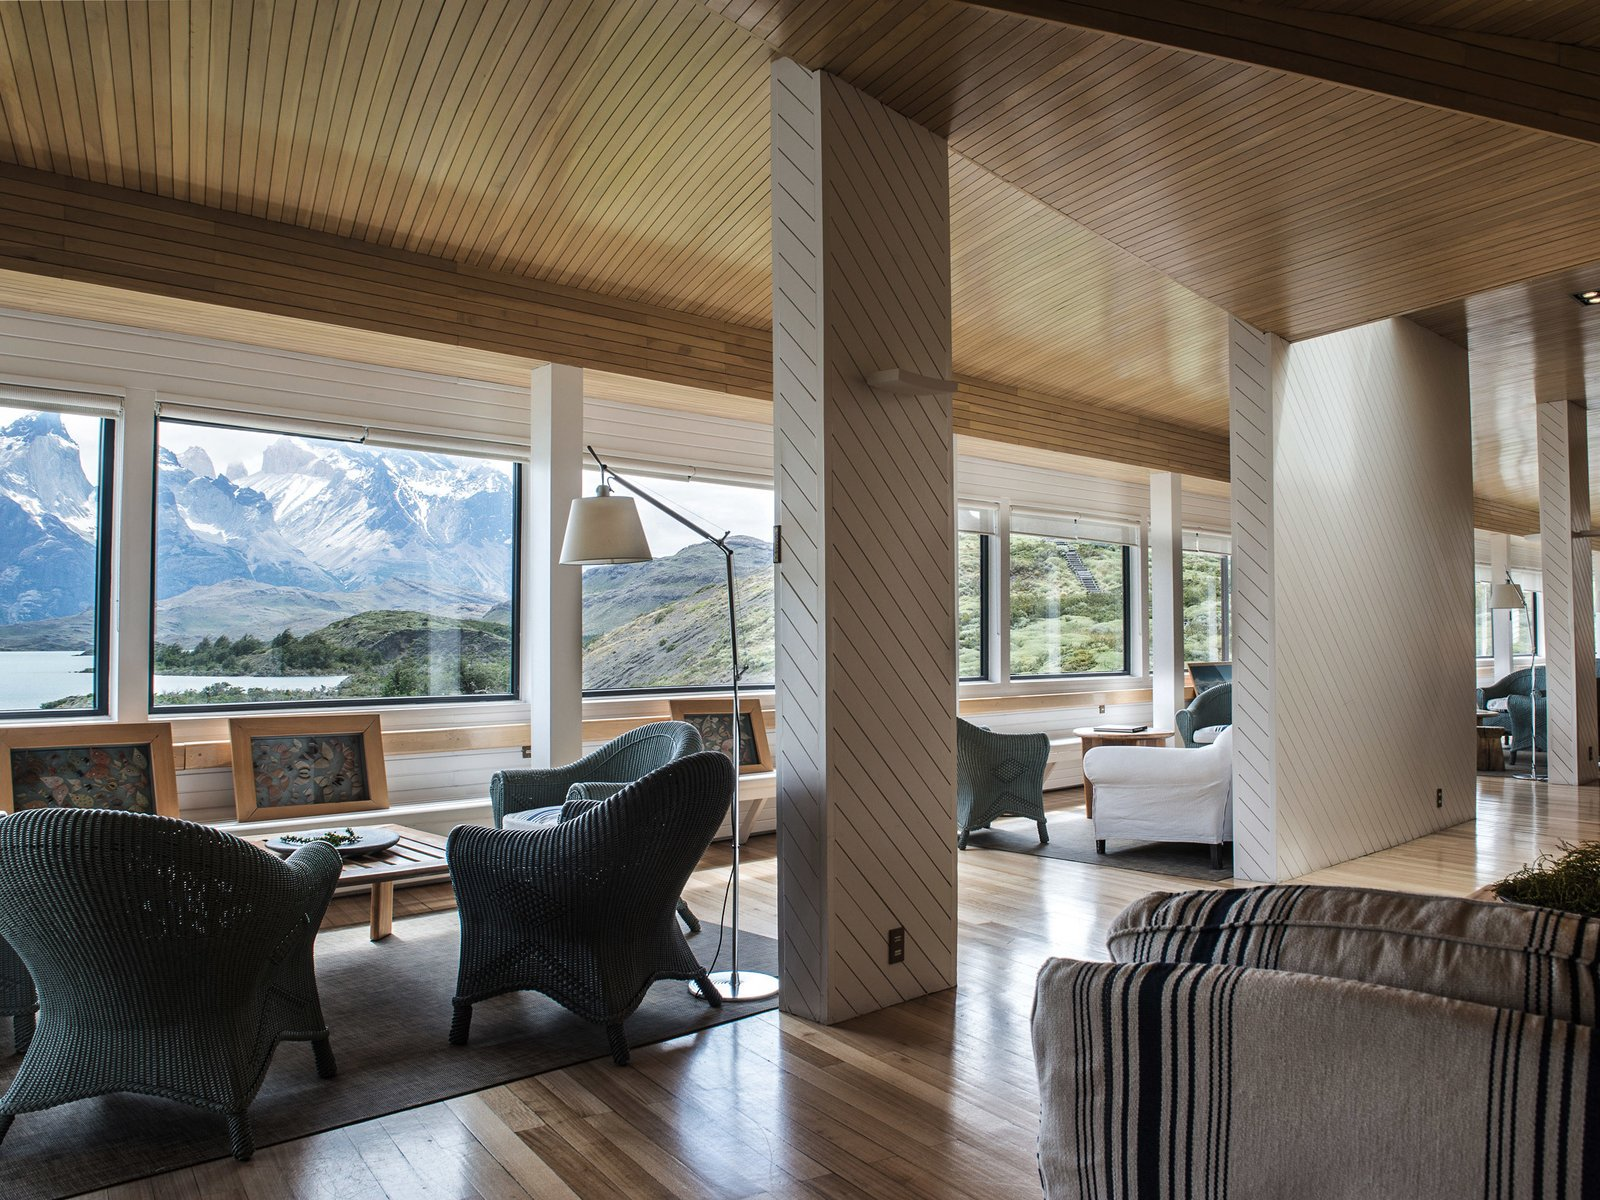 Photo 5 of 9 in Explora Patagonia Hotel – Your New Bucket List Addition